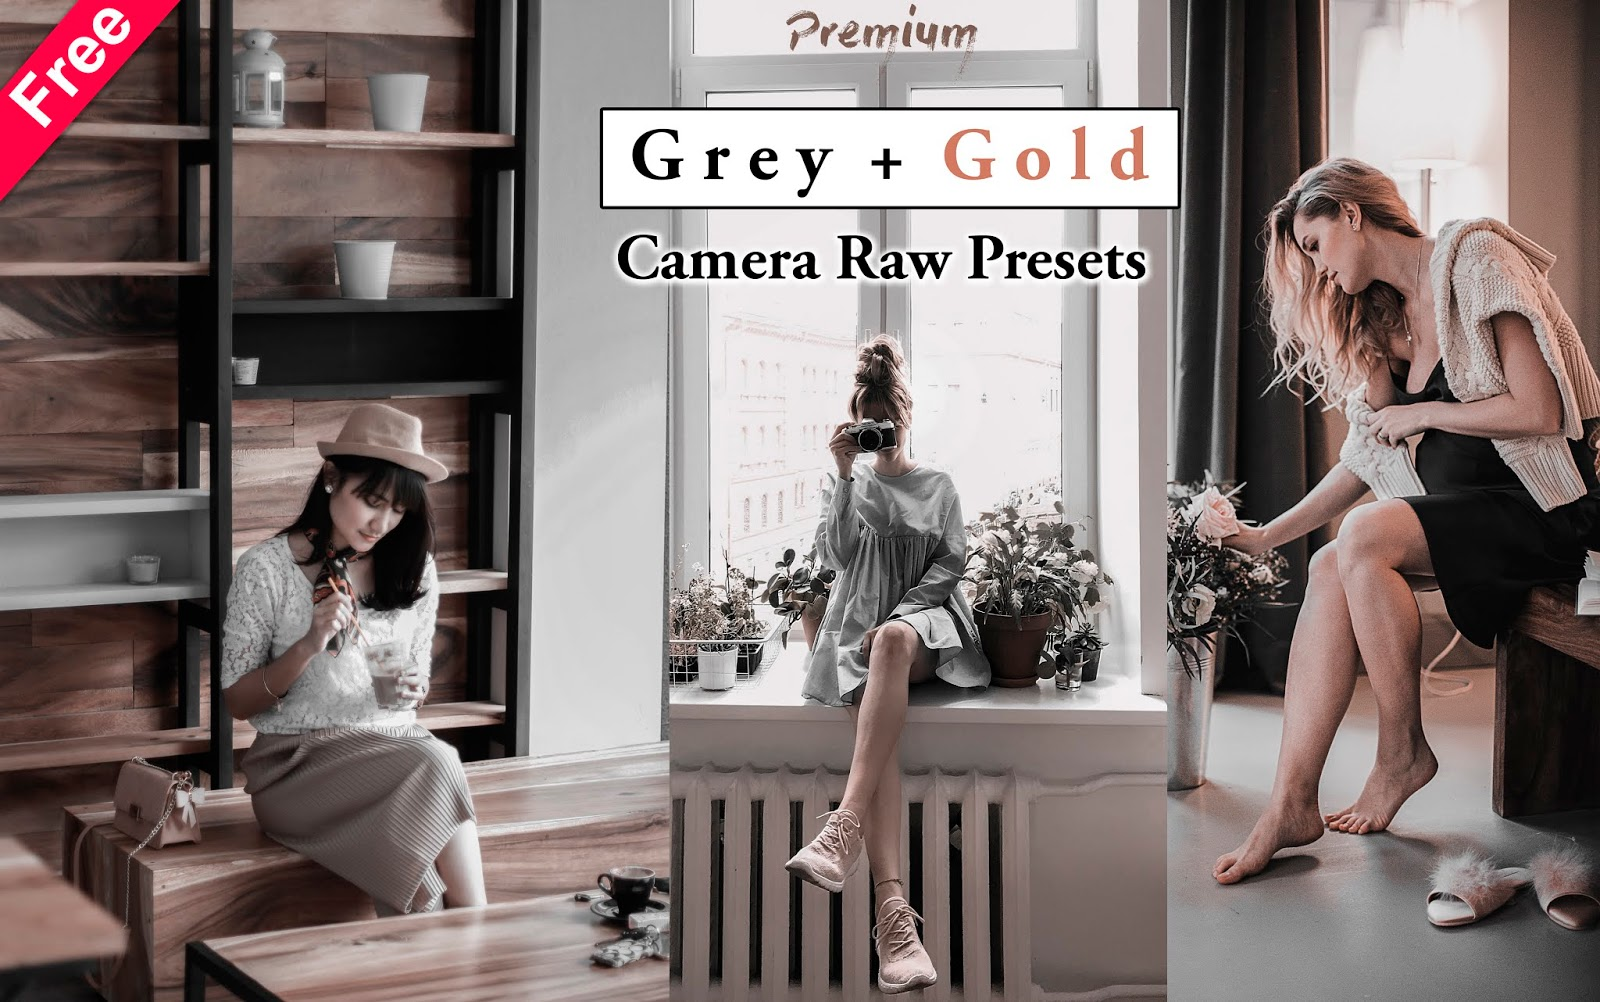 Download Premium Grey & Gold Camera Raw Preset for Free | How to Edit Grey Gold Effect in Photoshop